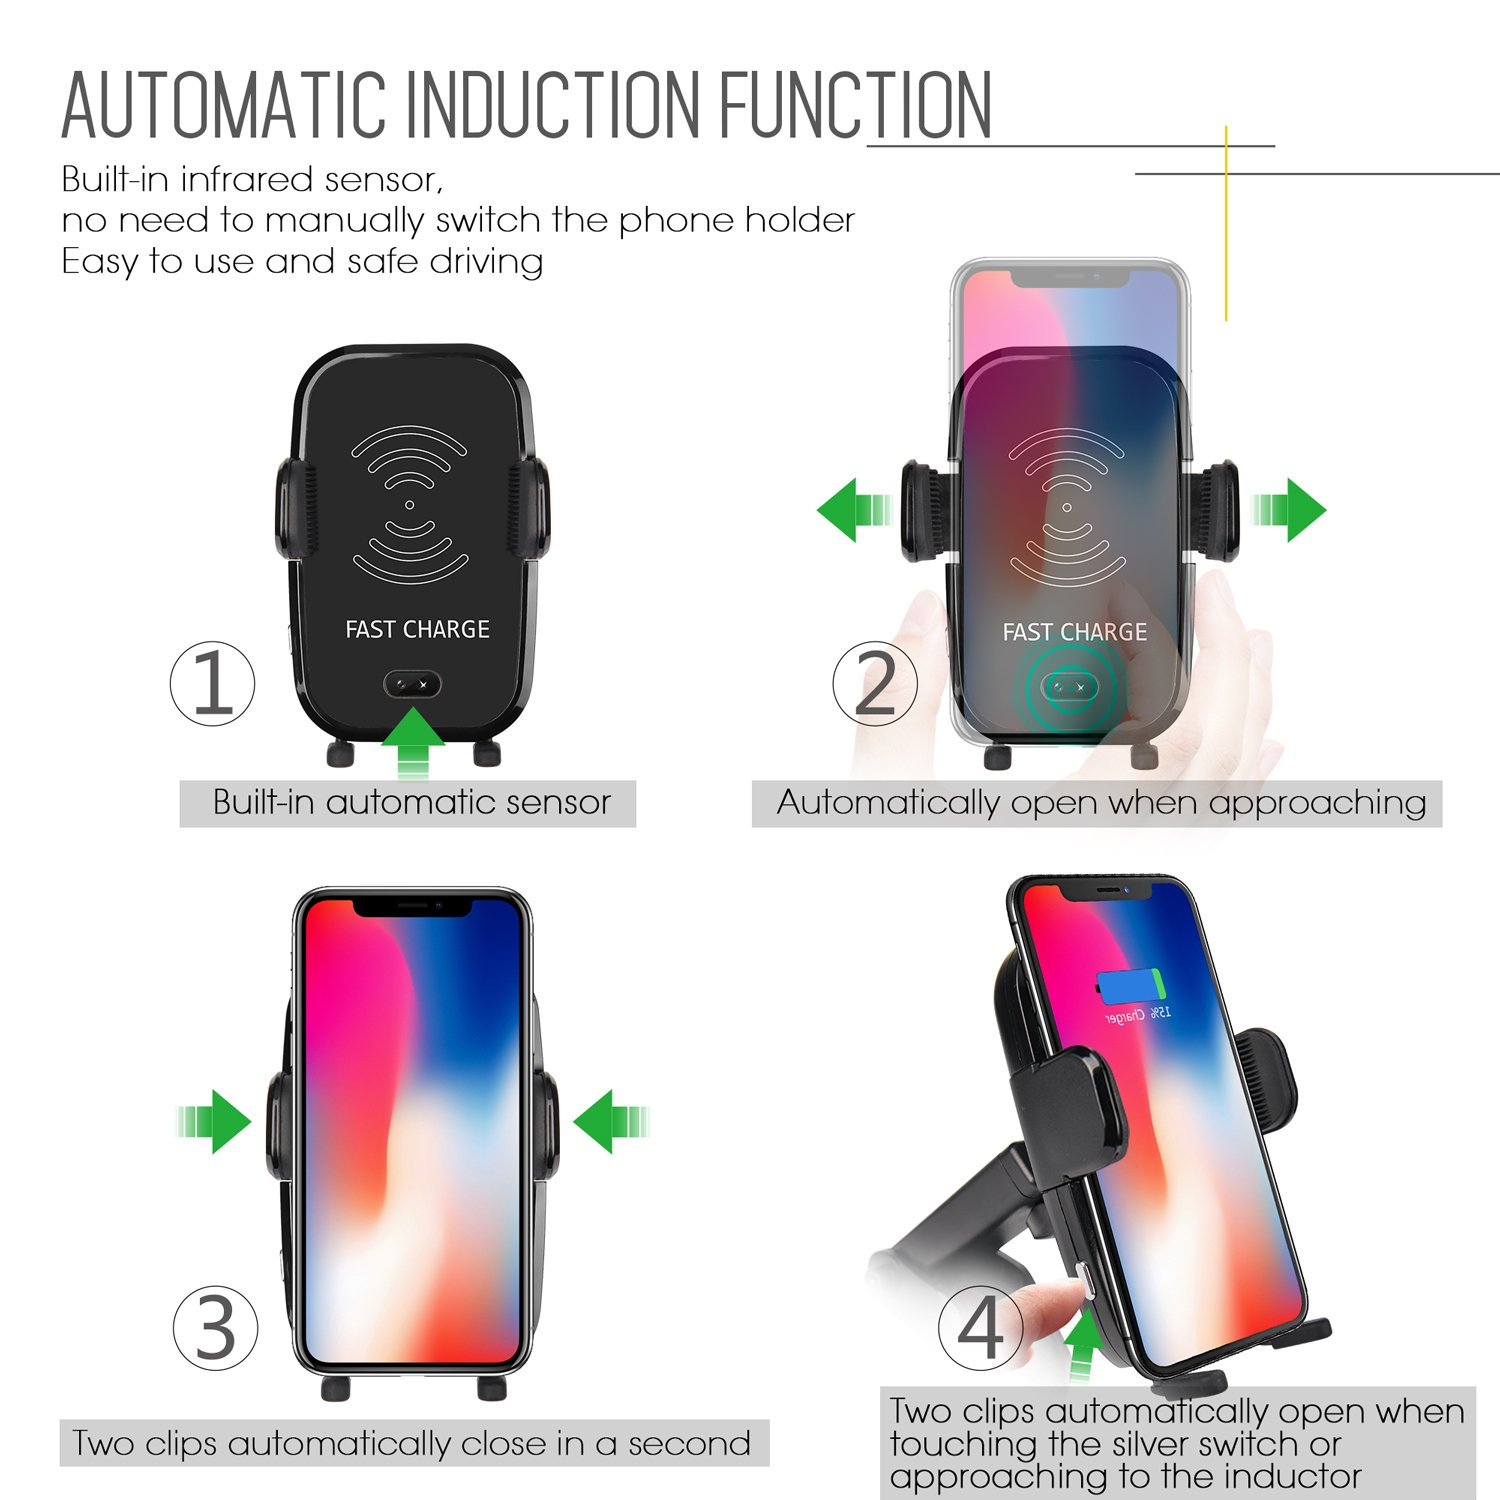 8//8 Plus Samsung Galaxy S8 ANNKOO Wireless Car Charger,Automatic Induction Note 8,Compatible with Standard Qi-Enabled Devices 10W 4351536642 Phone Holder Car Mount Fast Charging for iPhone X S7//S7 Edge